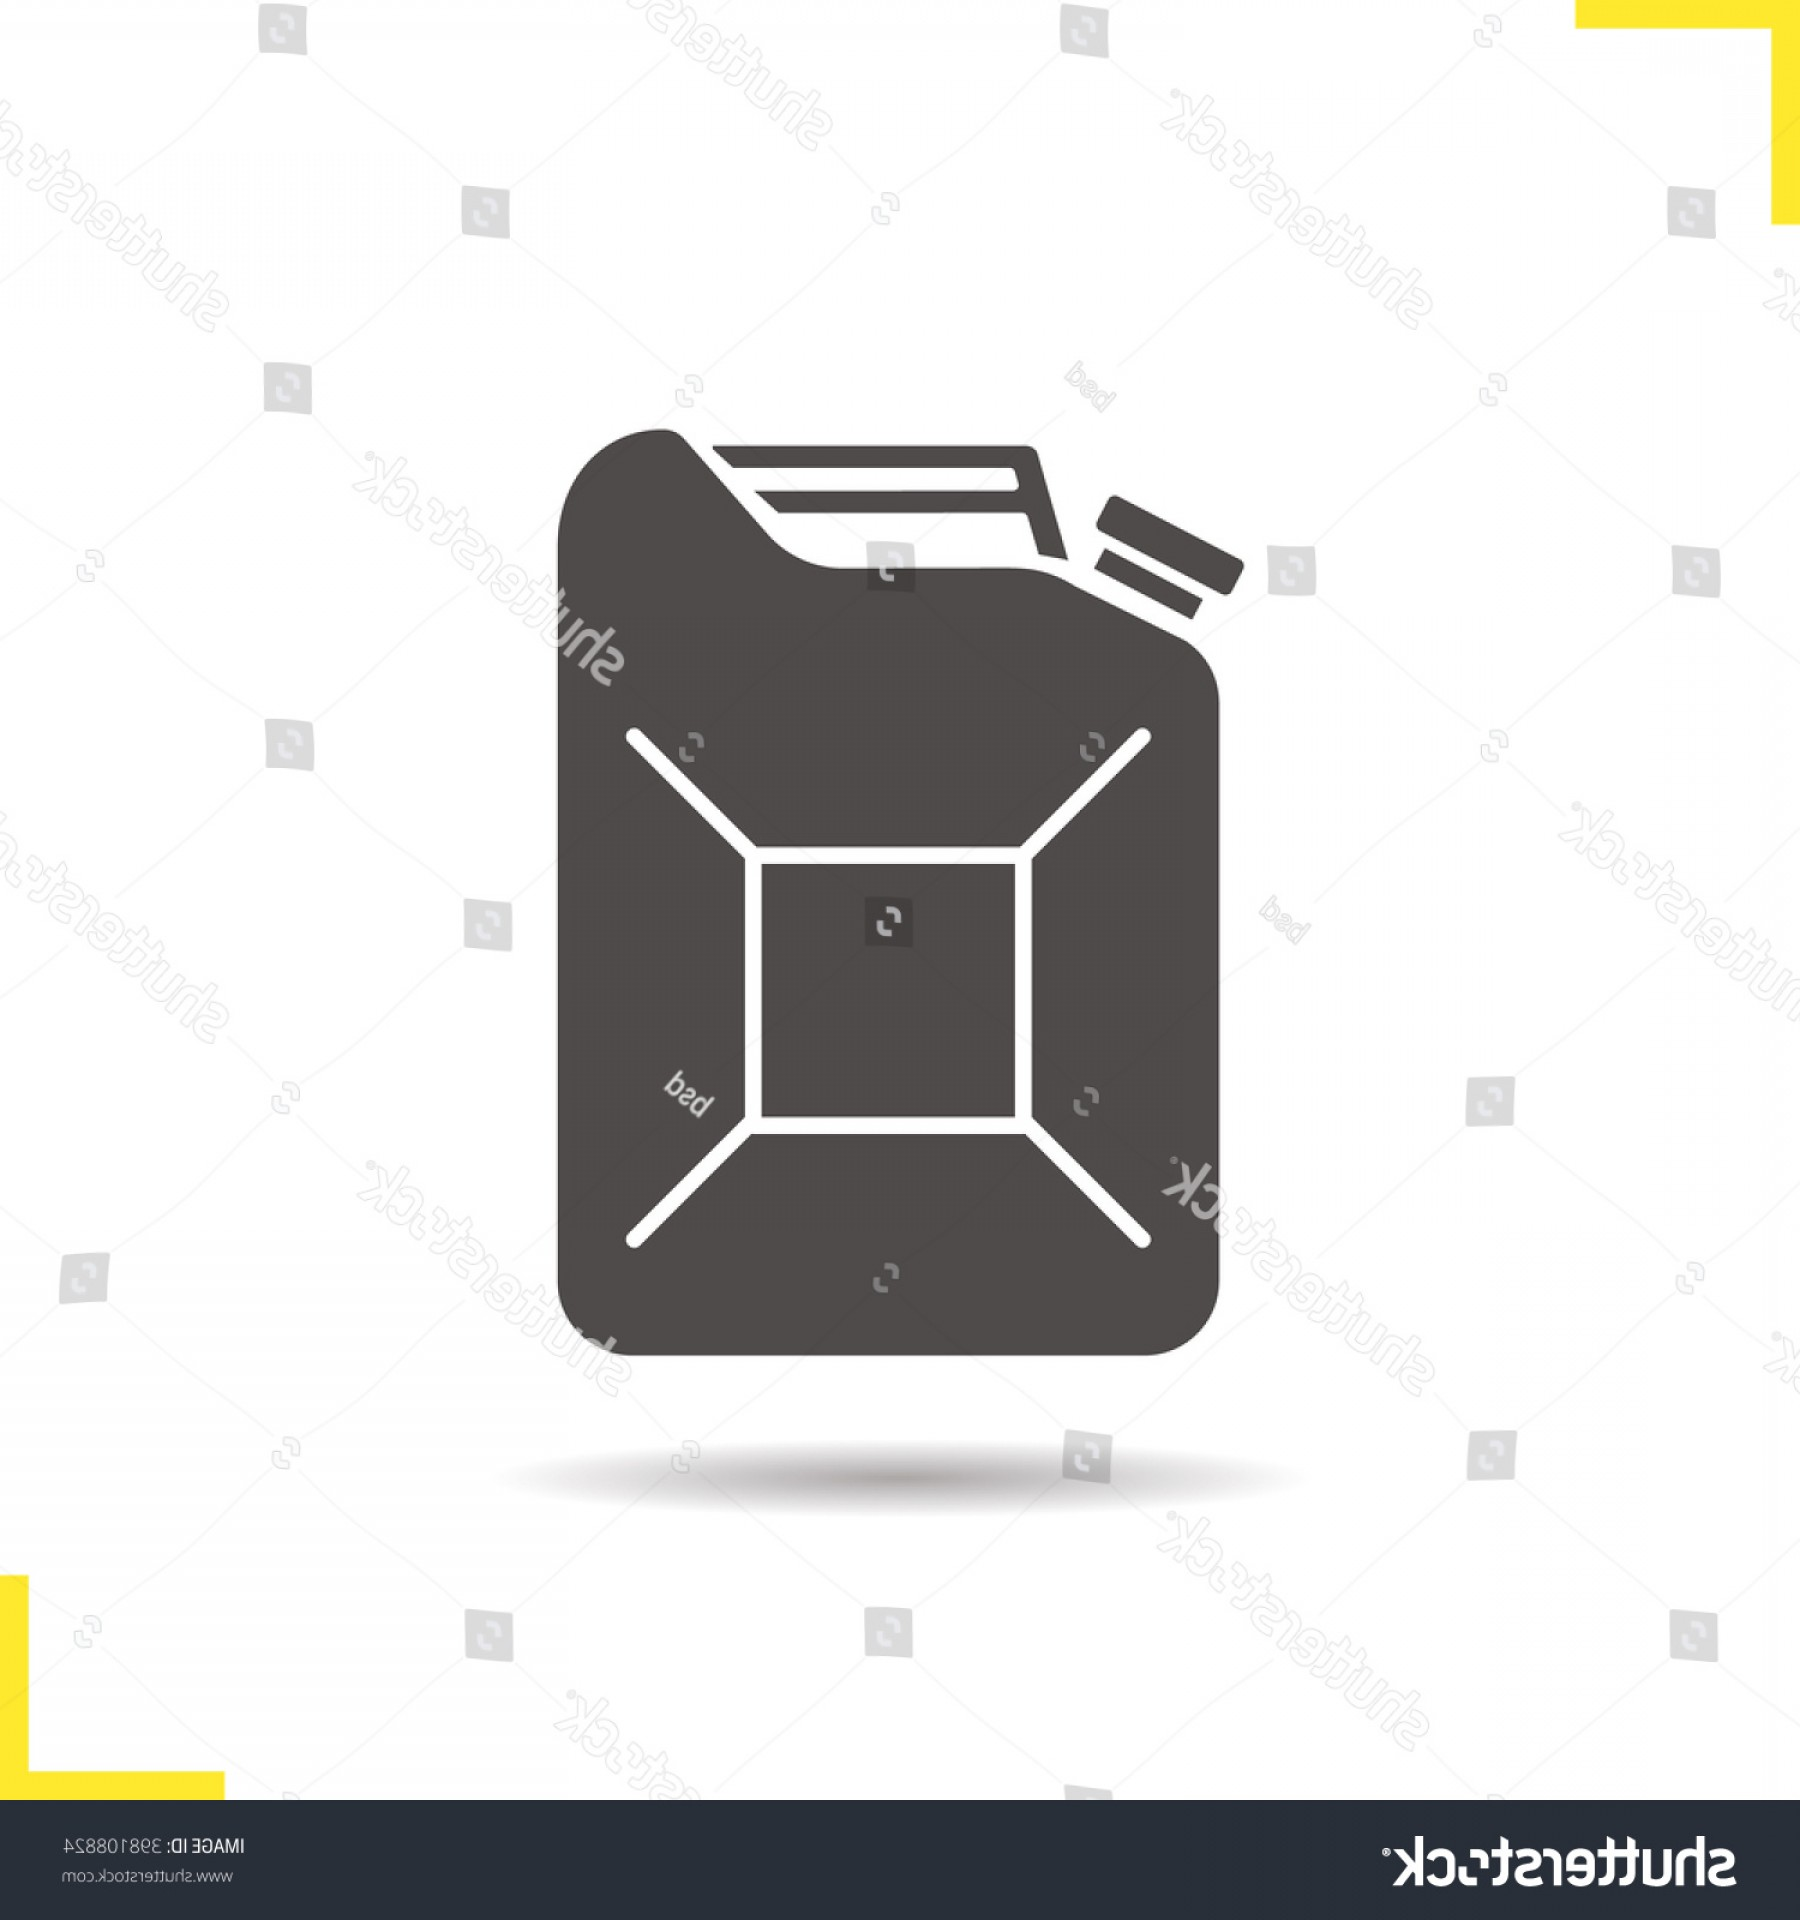 Maltese Cross Solid Vector: Petrol Jerrycan Icon Gasoline Canister Drop